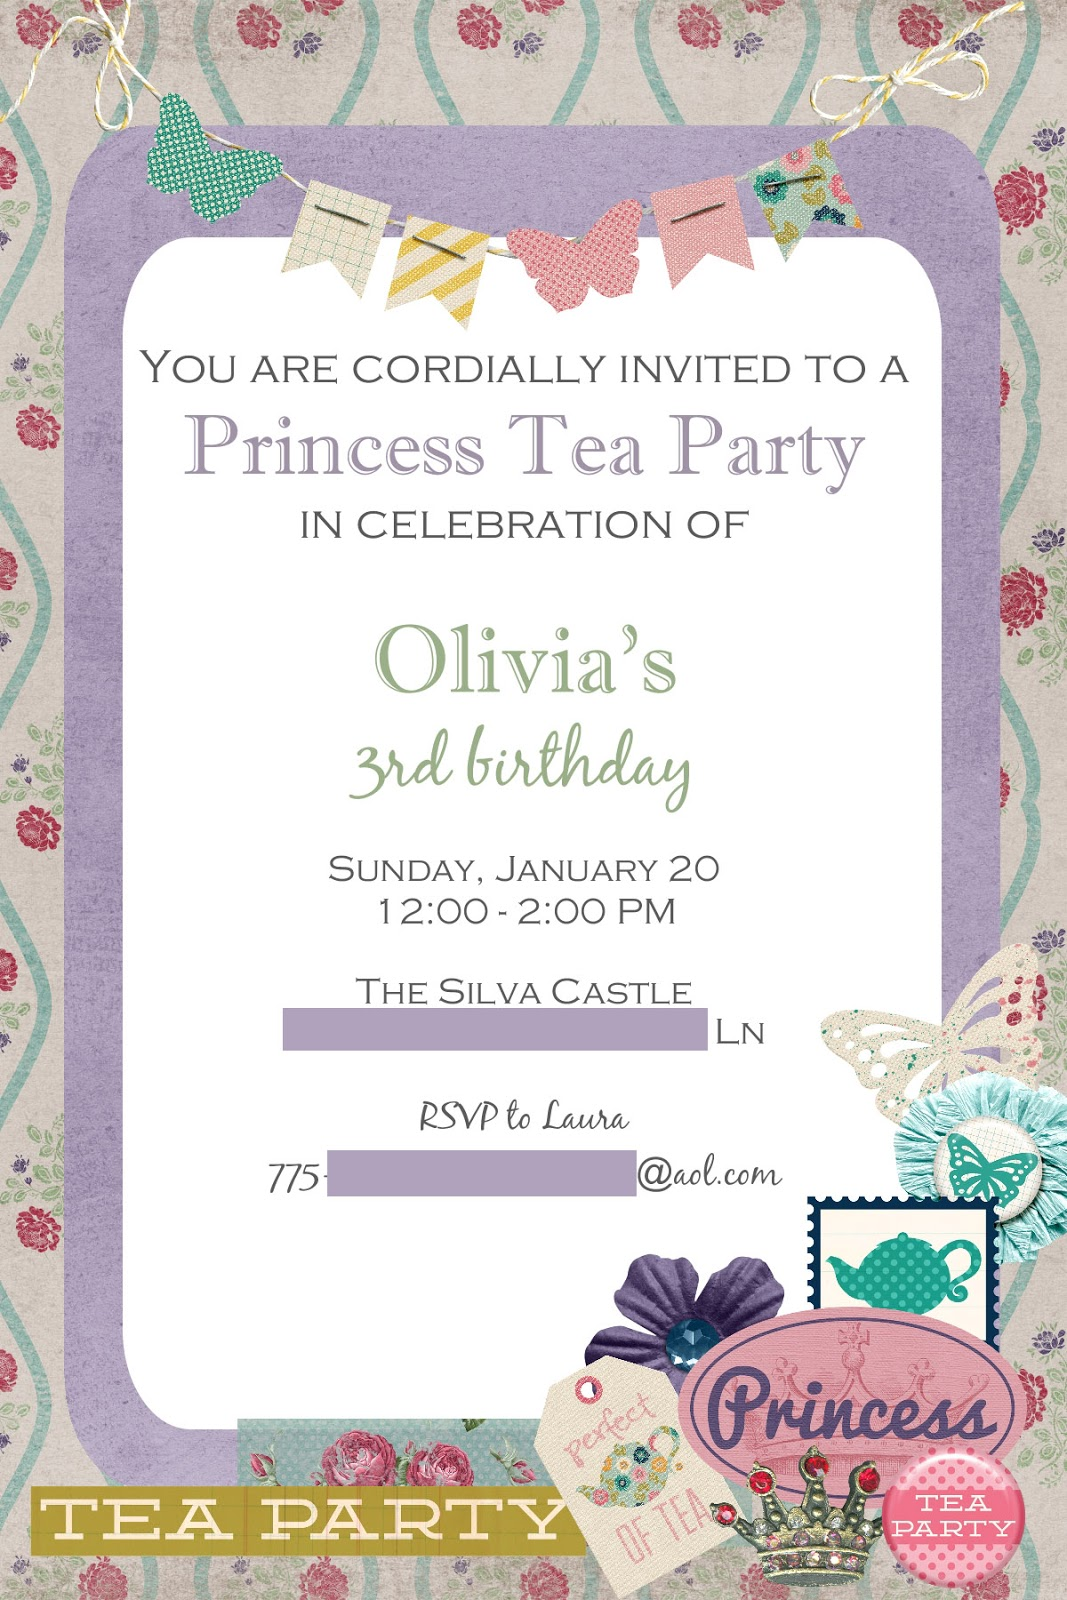 I Started By Creating An Invitation Used My Memories Purchased Two Digital Sbook Kits To Use Create The Tea For